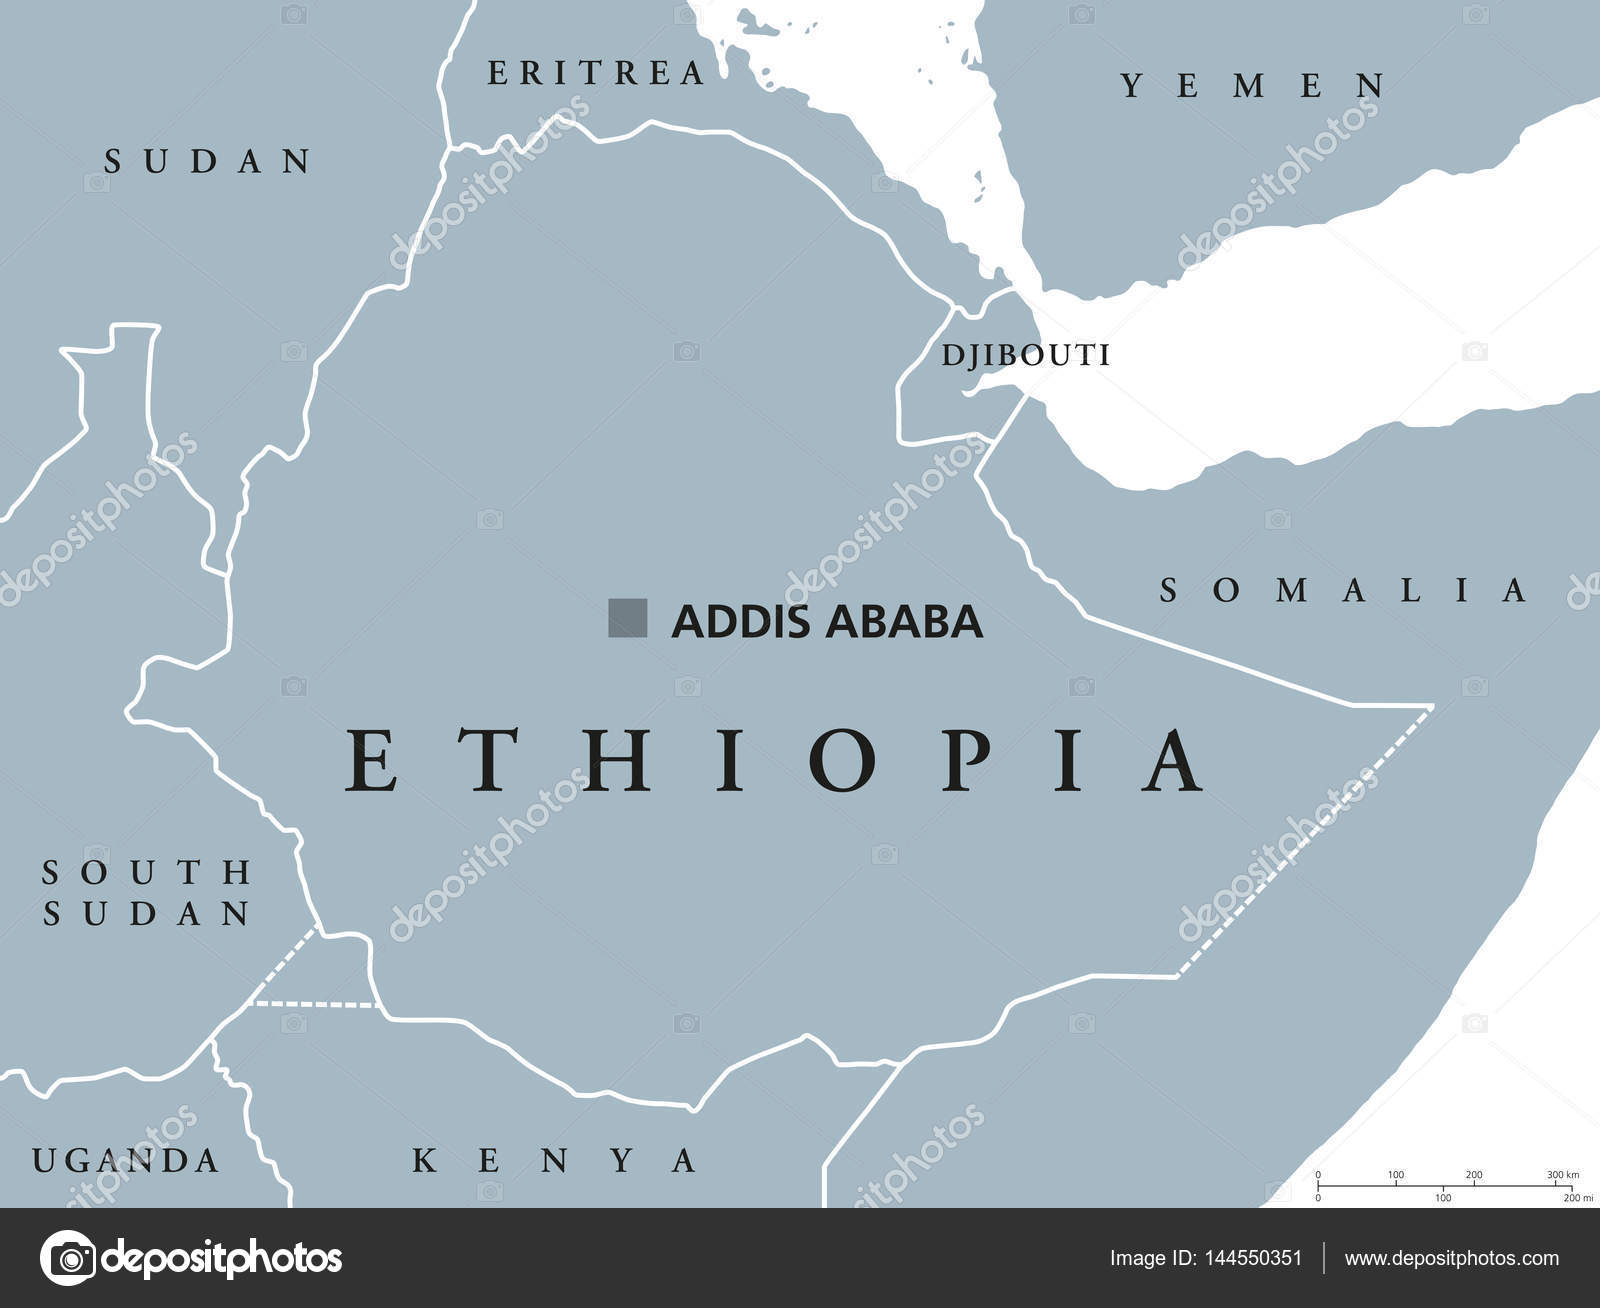 Ethiopia Location On Africa Map.Ethiopia Political Map Stock Vector C Furian 144550351